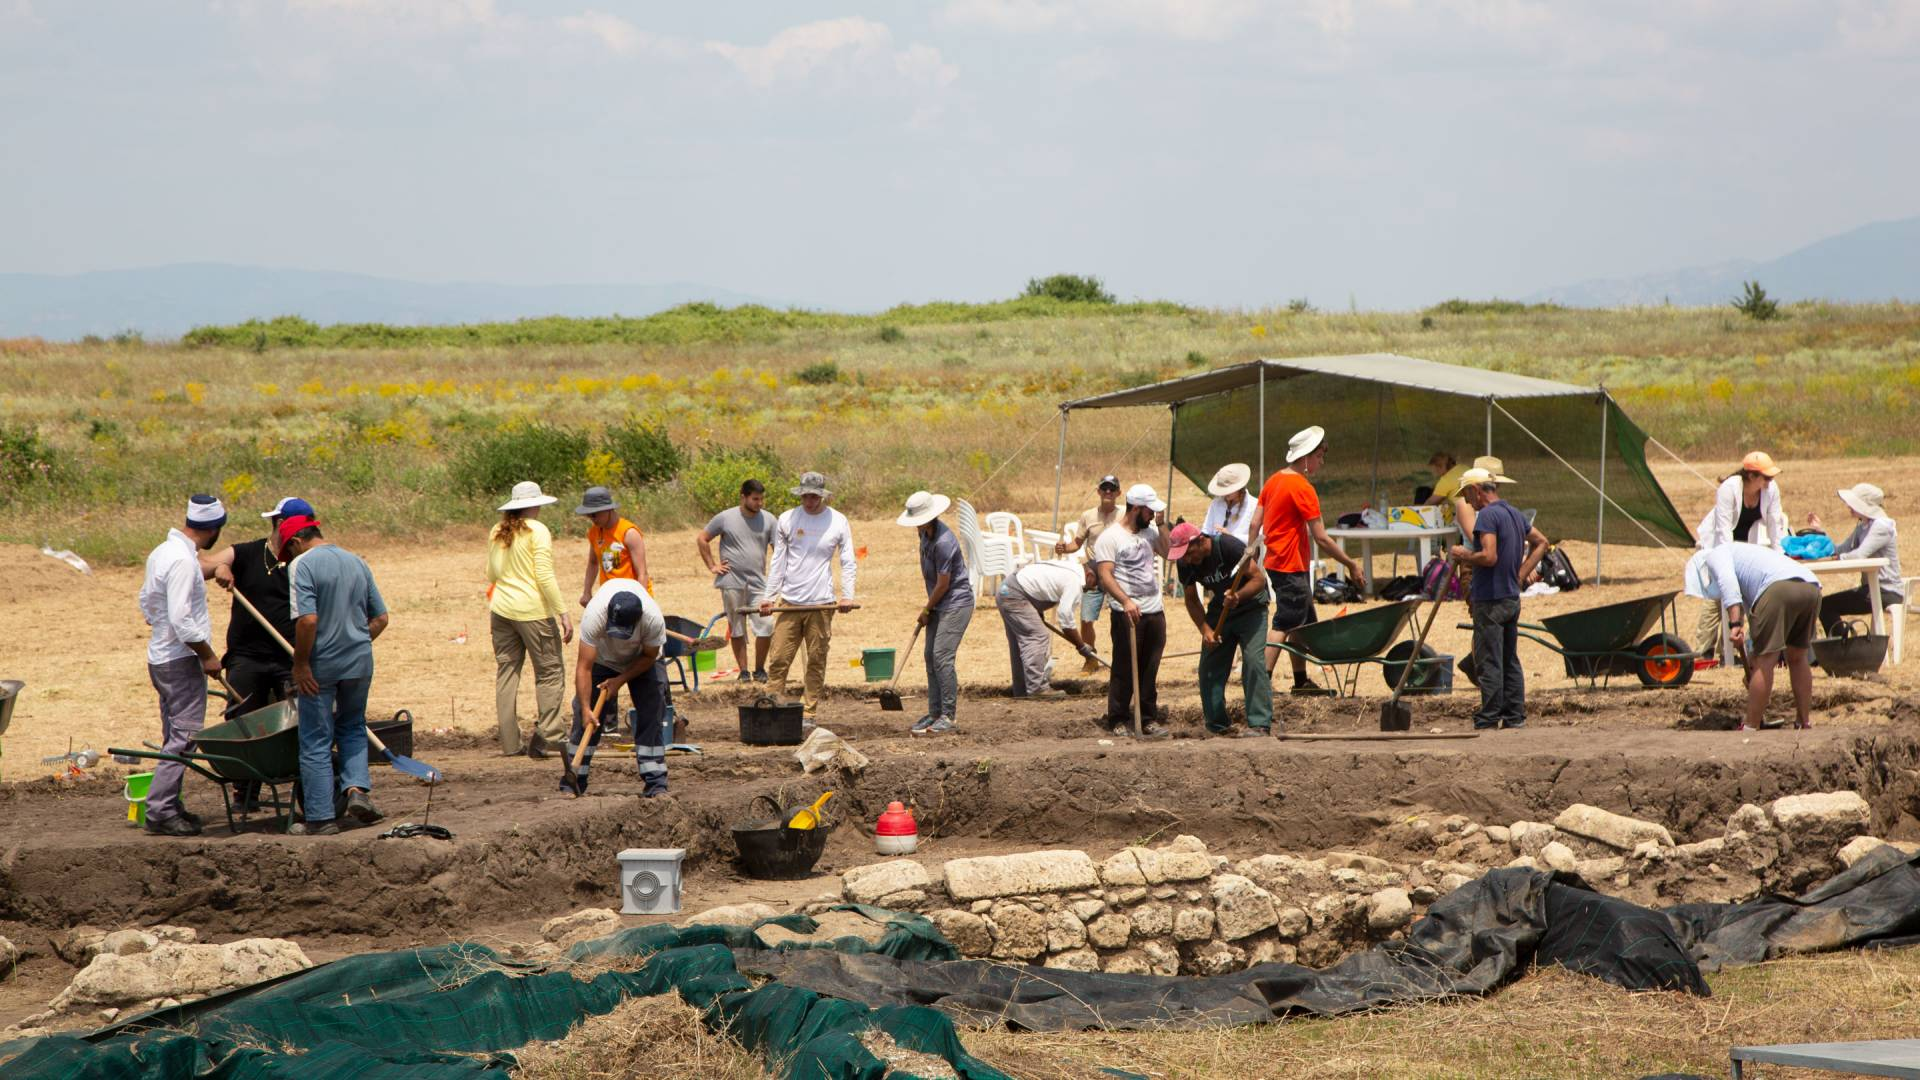 Students digging at excavation site